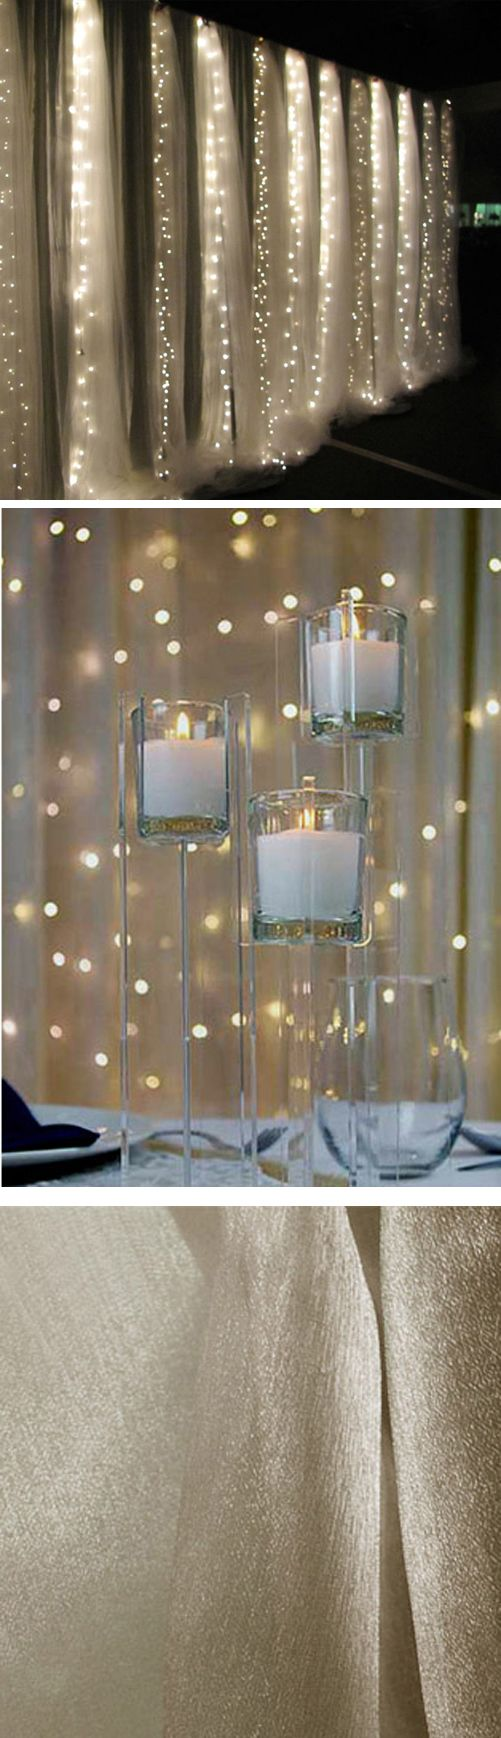 How To Make Curtain Lights Use Gold Organza And Fairy Lights To Make Curtains For Back Drop